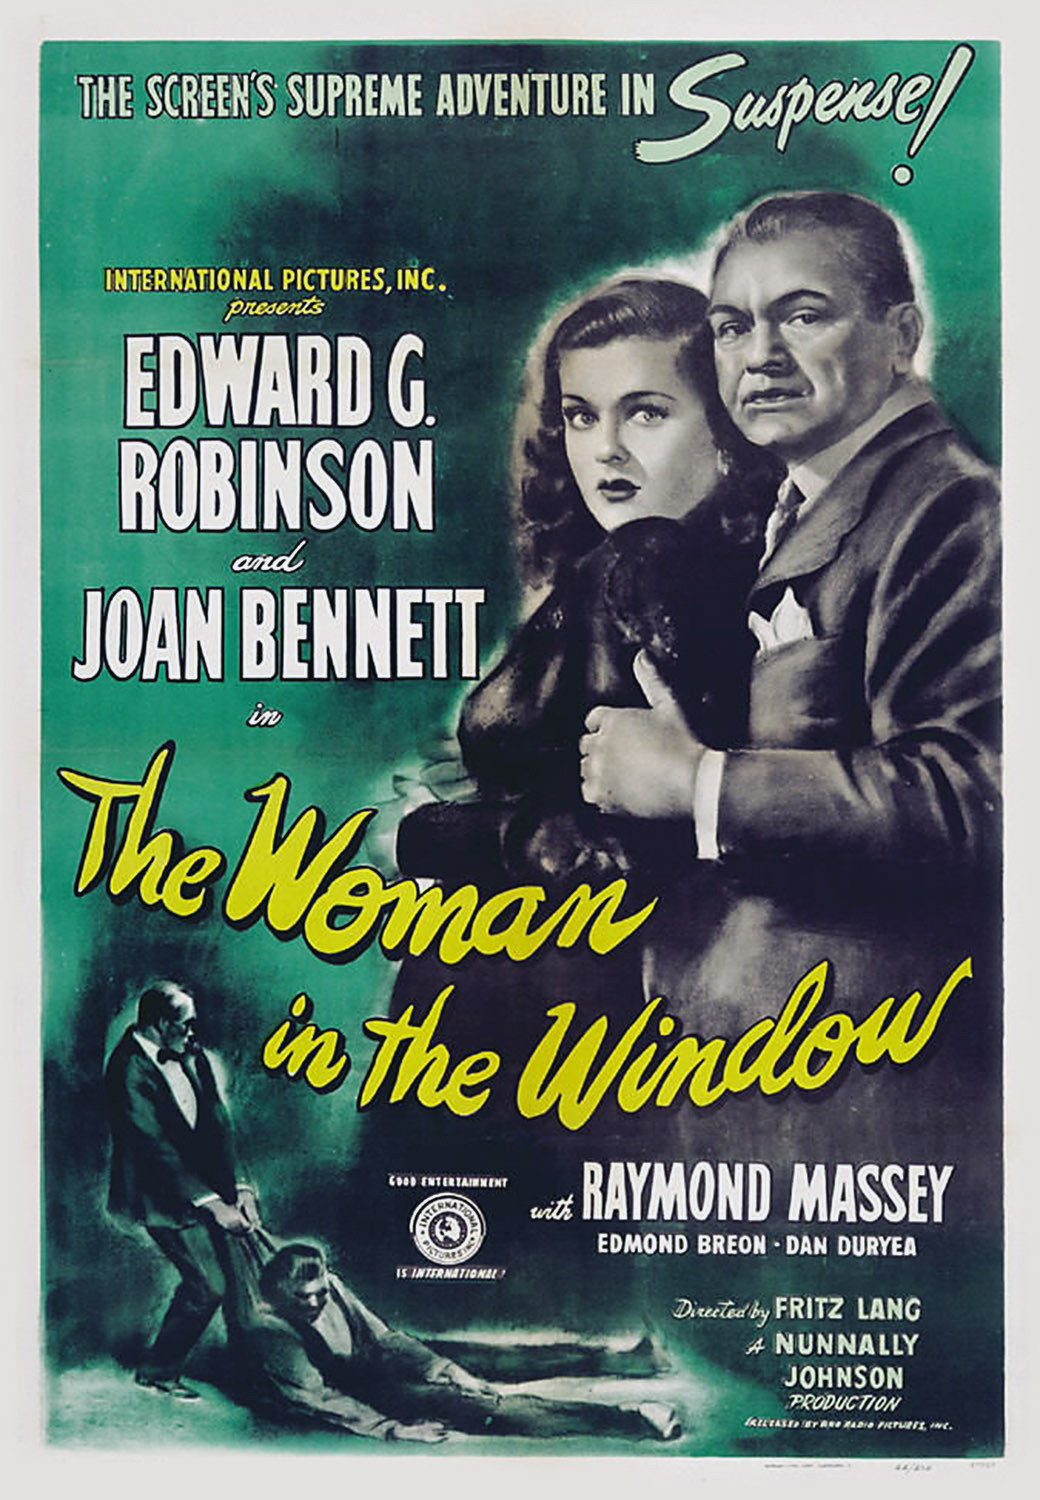 The Woman in the Window (1944) is a film noir directed by Fritz Lang that tells the story of psychology professor Richard Wanley (Edward G. Robinson) who meets and becomes enamored with a young femme fatale.